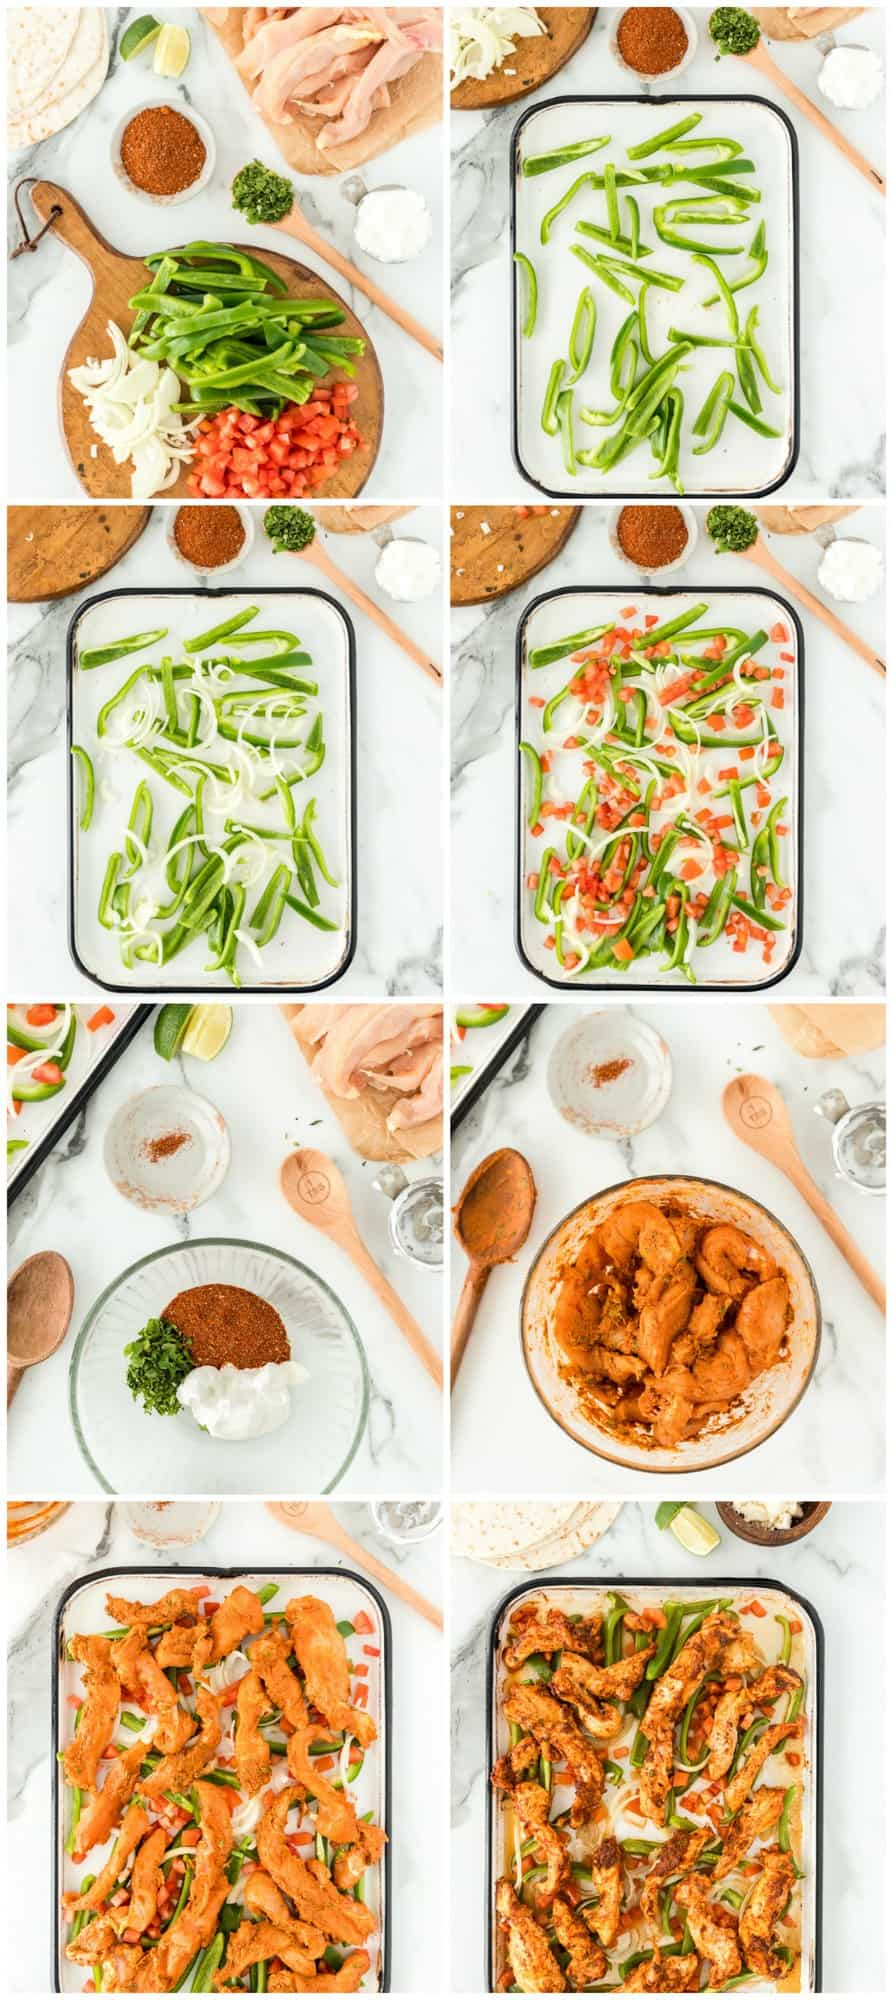 step by step photos of making baked chicken fajitas